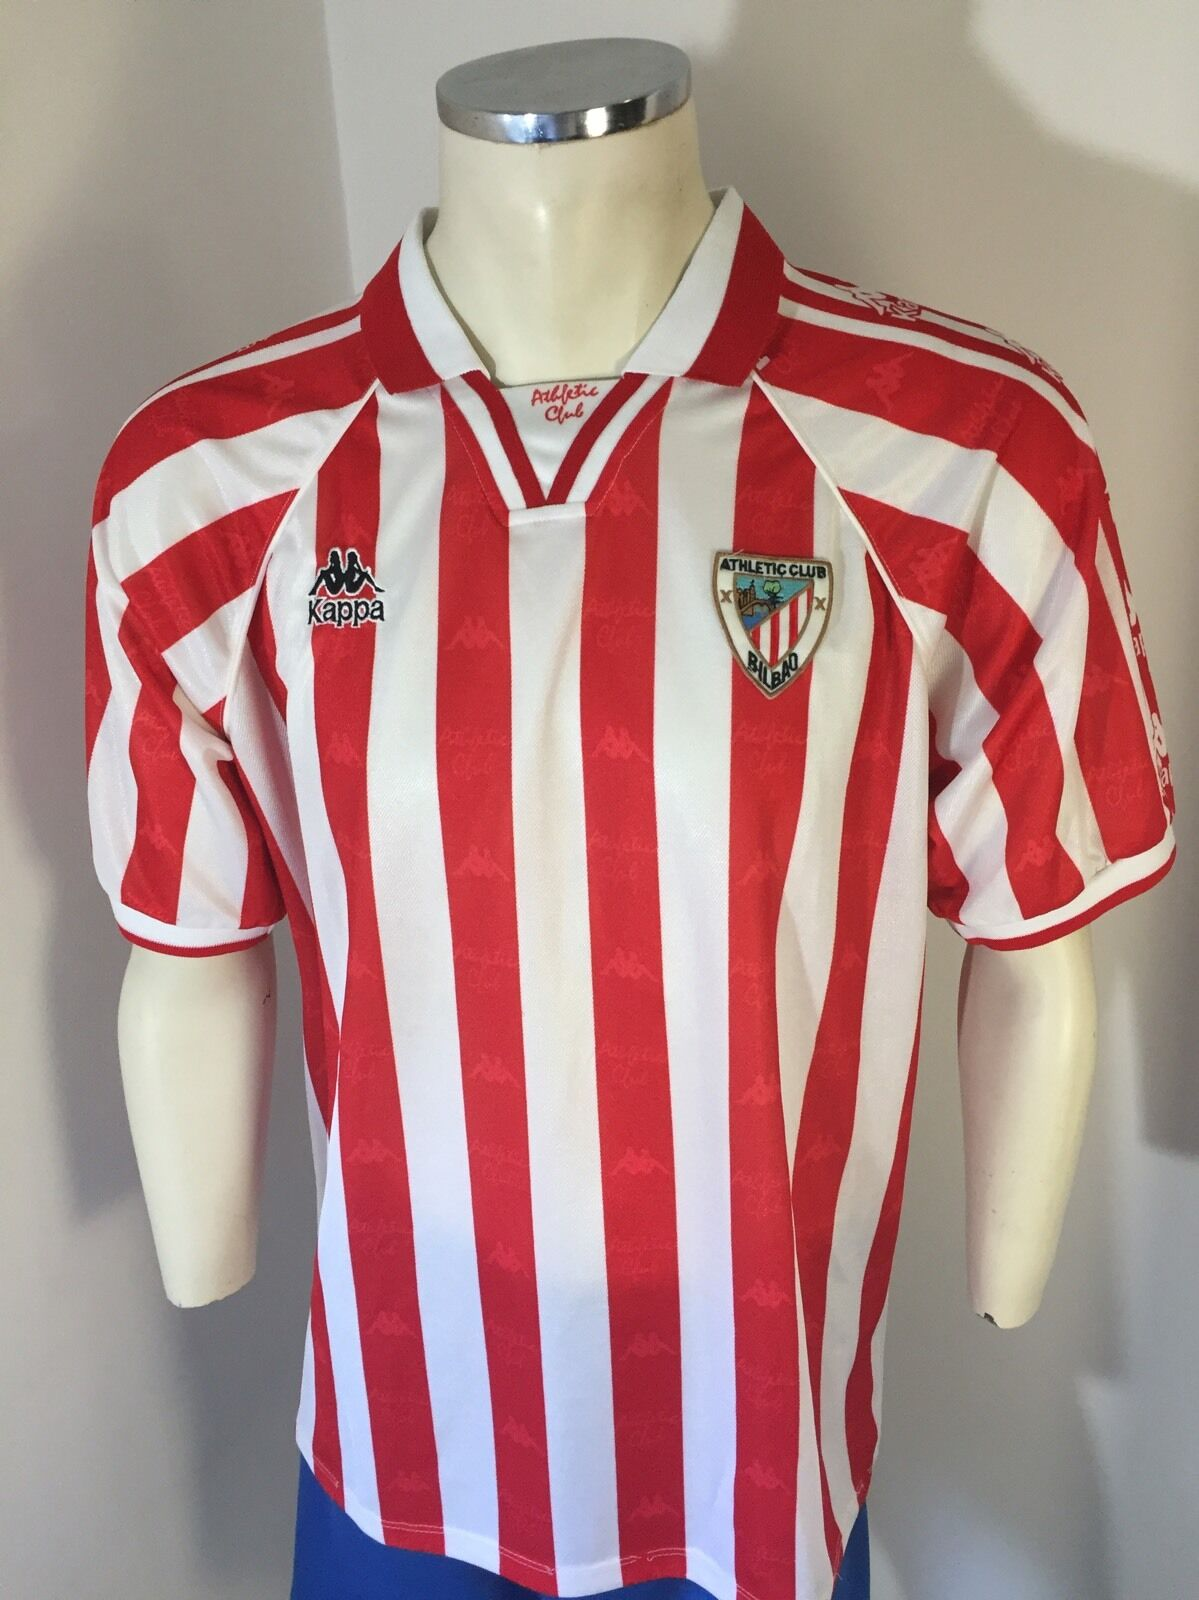 CAMISETA ATHLETIC CLUB BILBAO KAPPA SHIRT VINTAGE 90s Talla XL